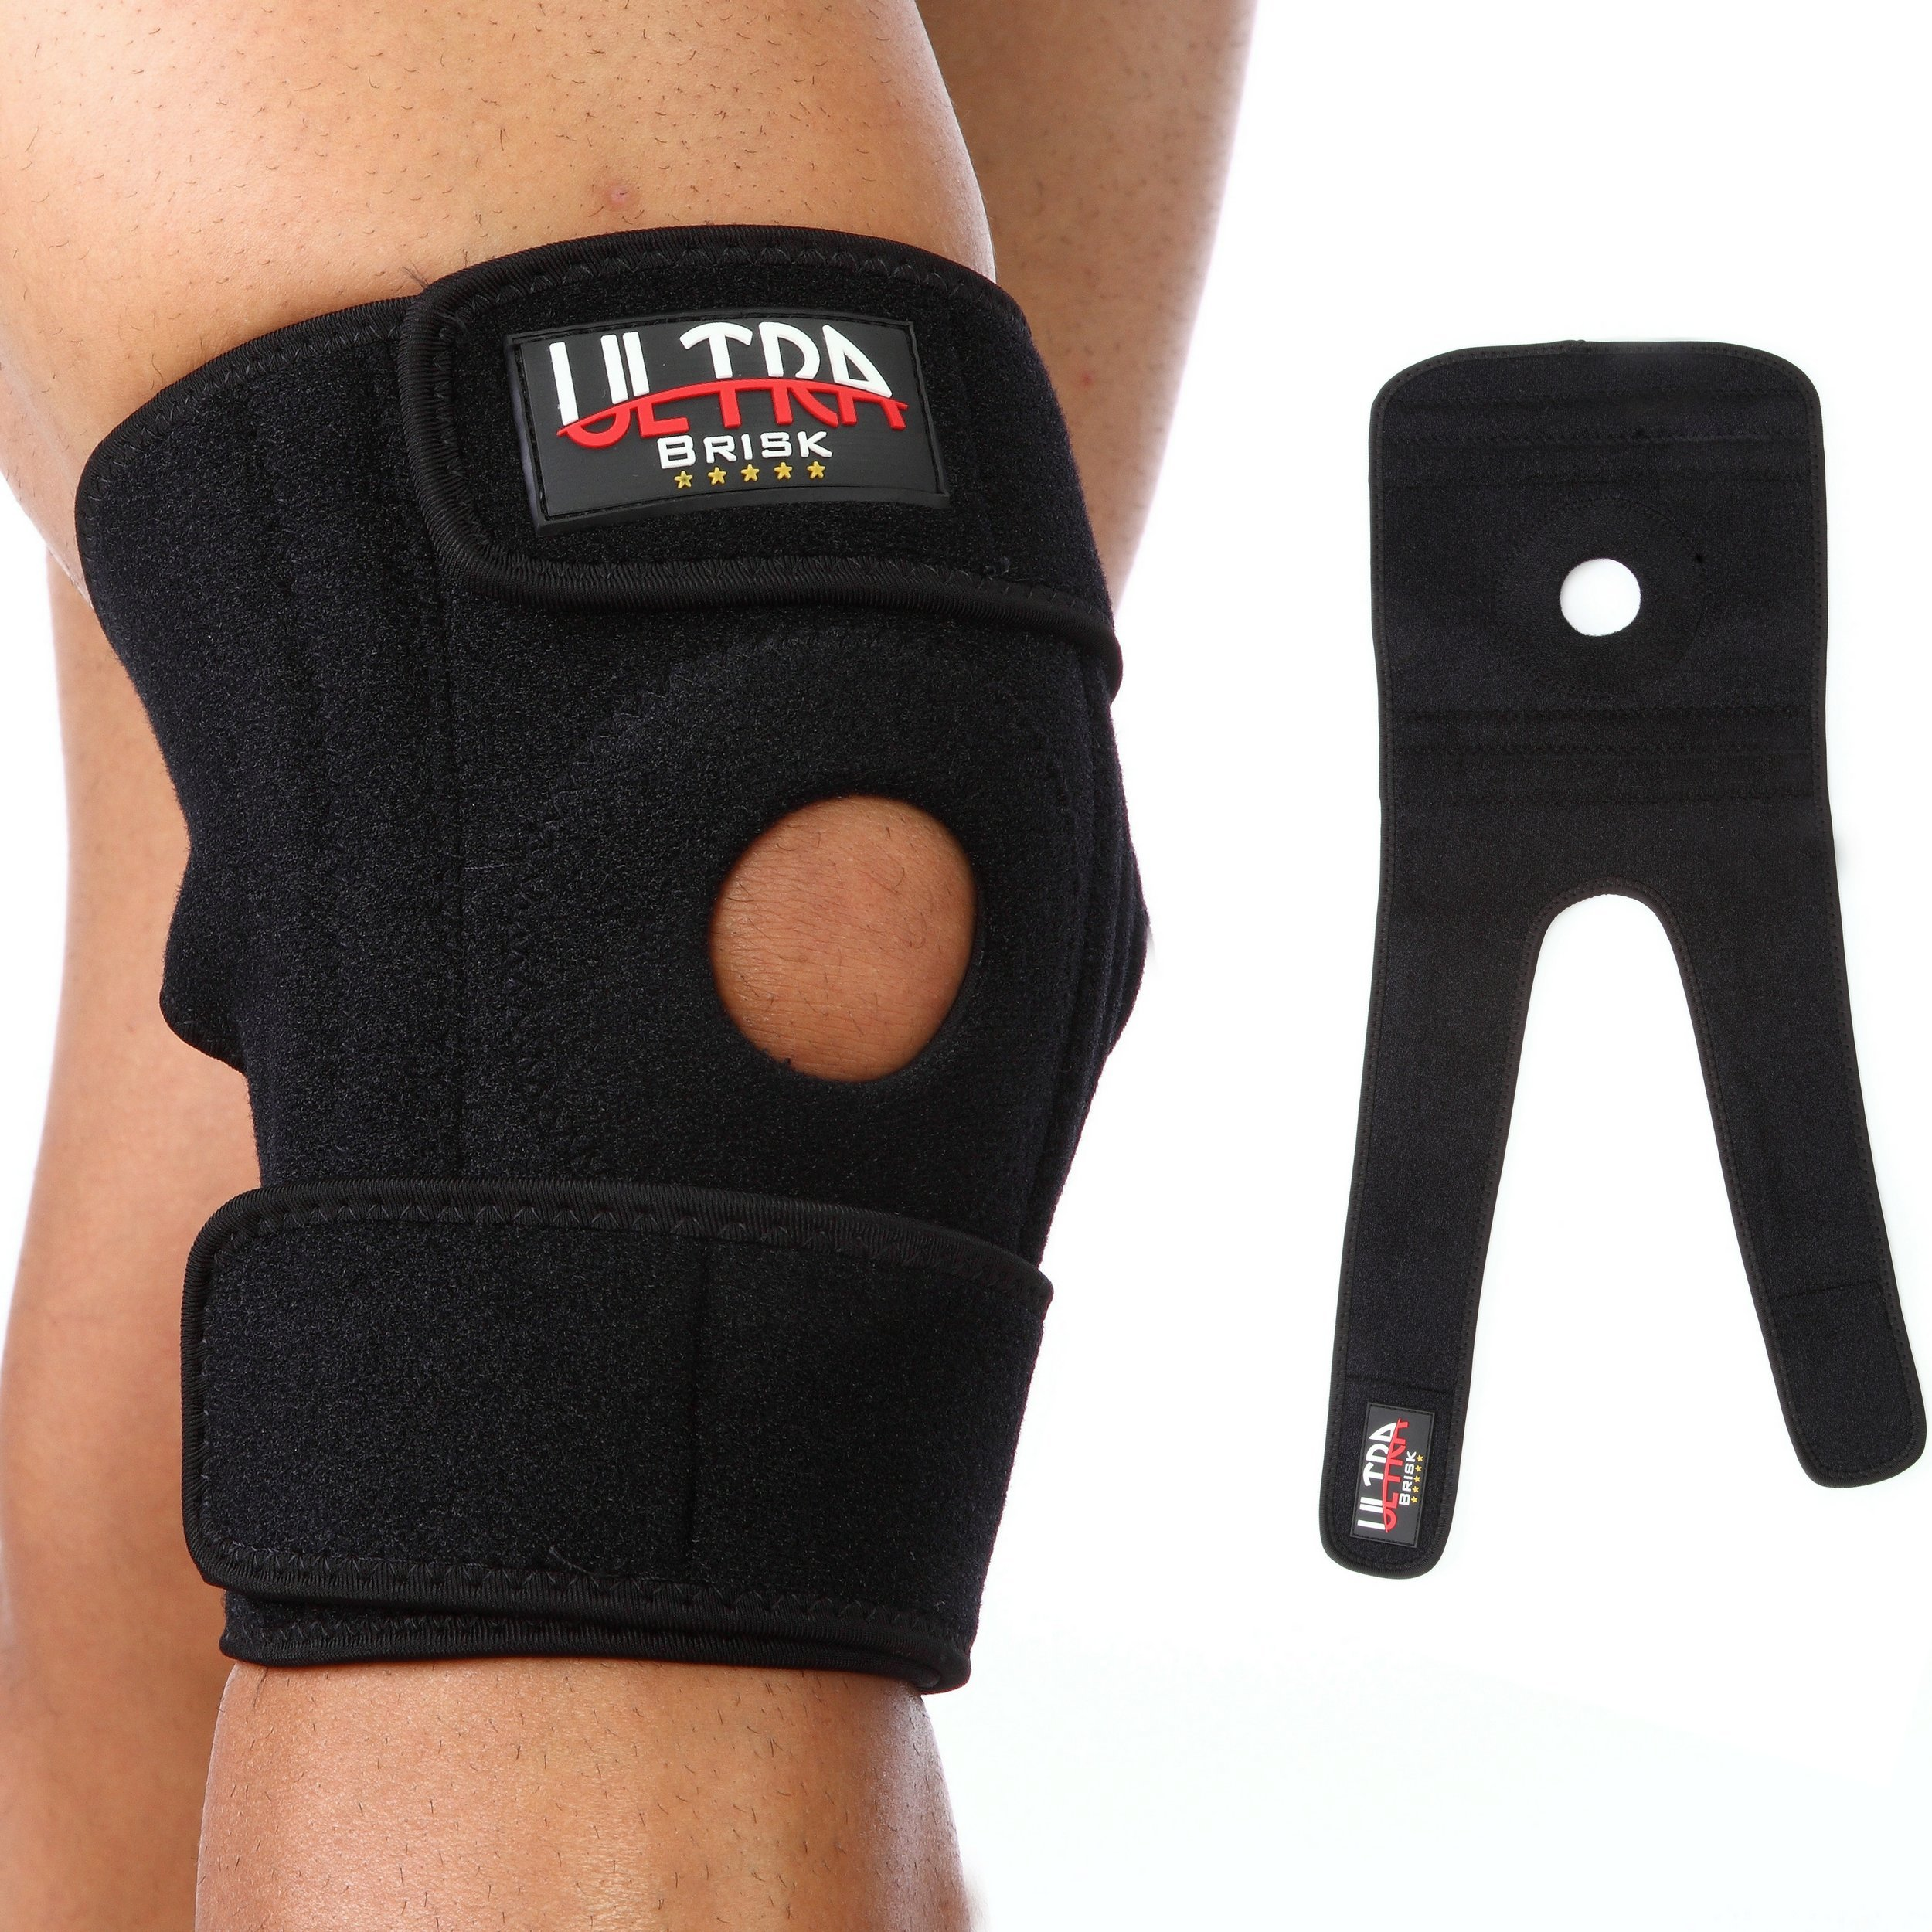 Medical Grade Knee Brace for Support, Meniscus Tear, Arthritis, ACL, Running, Basketball, Sports, Athletics. Open Patella Protector Wrap, Neoprene, Non-Bulky, Relieves Pain. FDA Approved